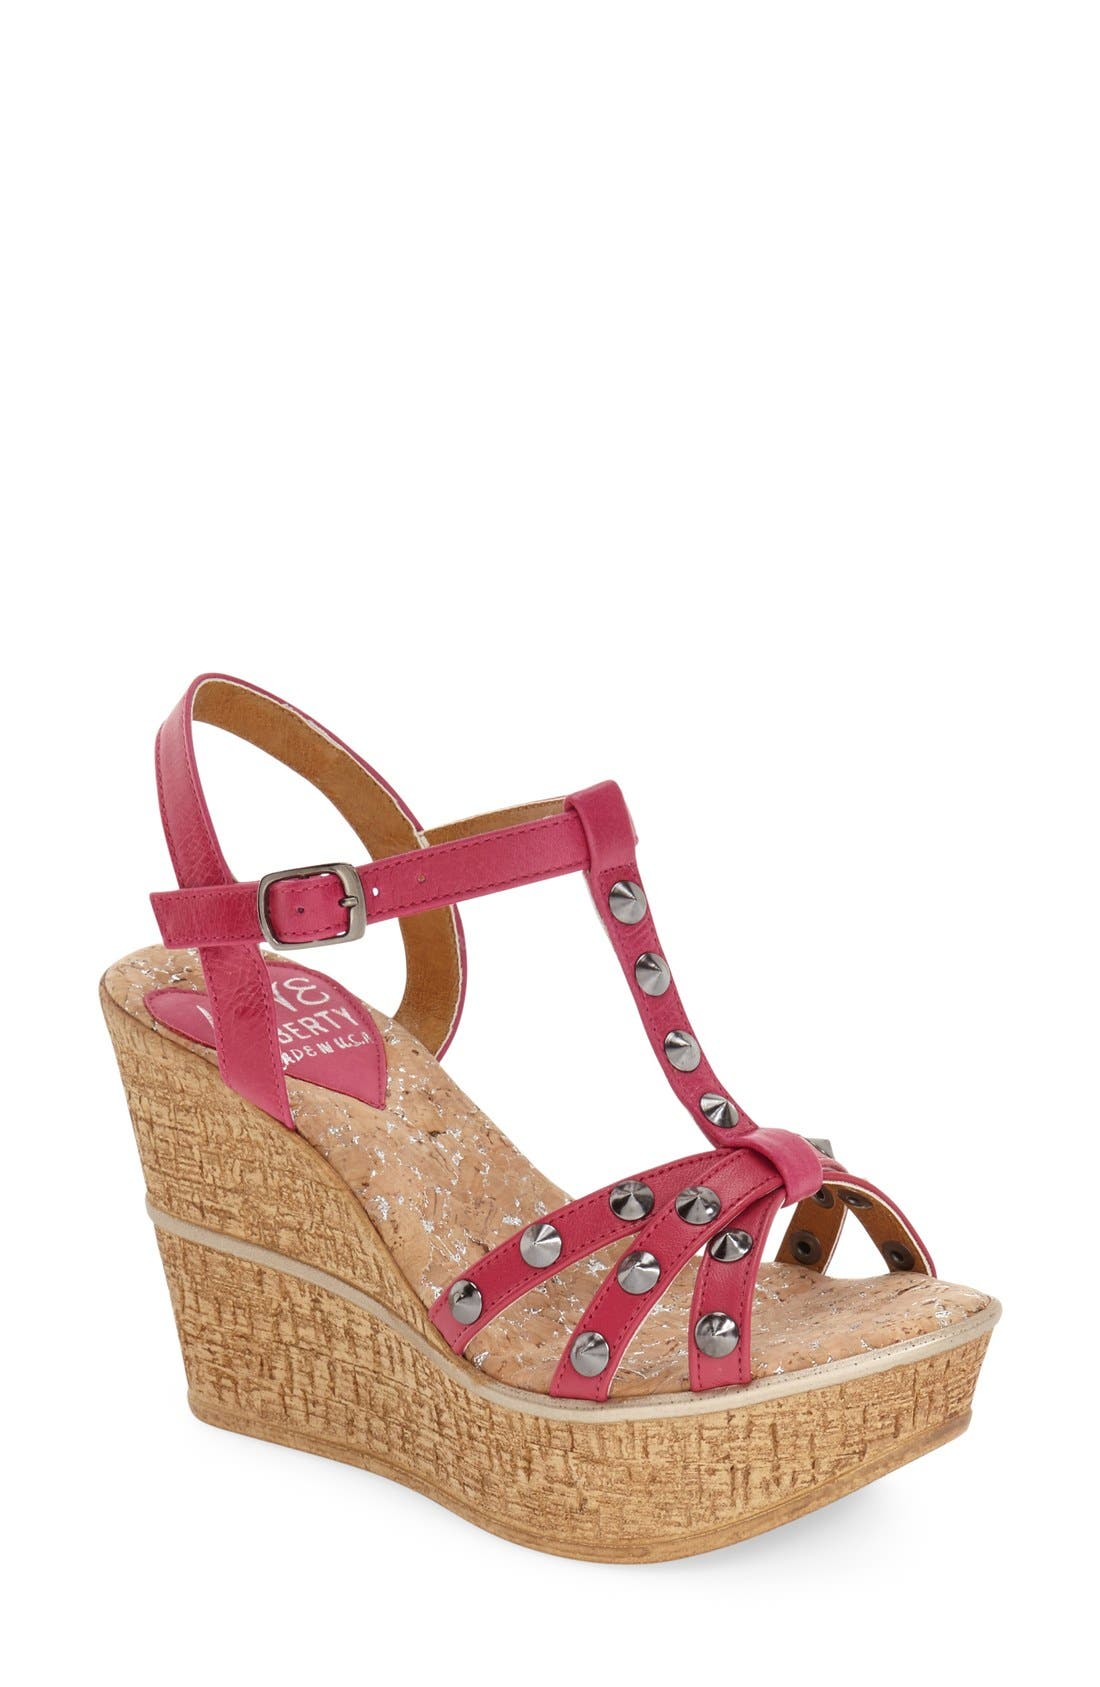 LOVE AND LIBERTY 'Violet' Spiked T-Strap Wedge Sandal